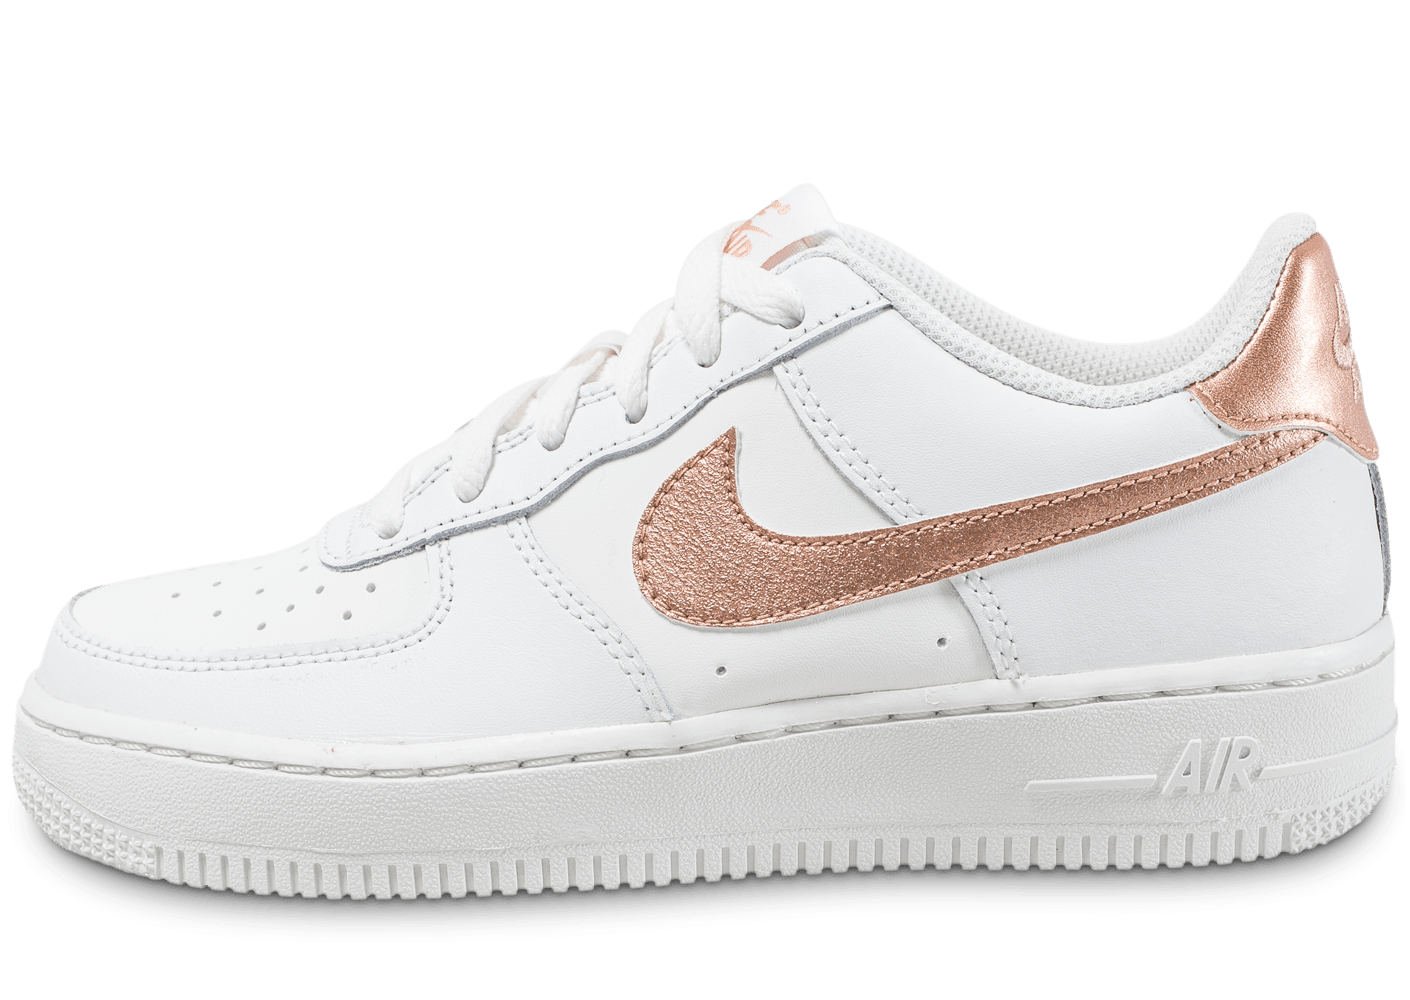 nike air force 1 junior summit bronze chaussures enfant chausport. Black Bedroom Furniture Sets. Home Design Ideas